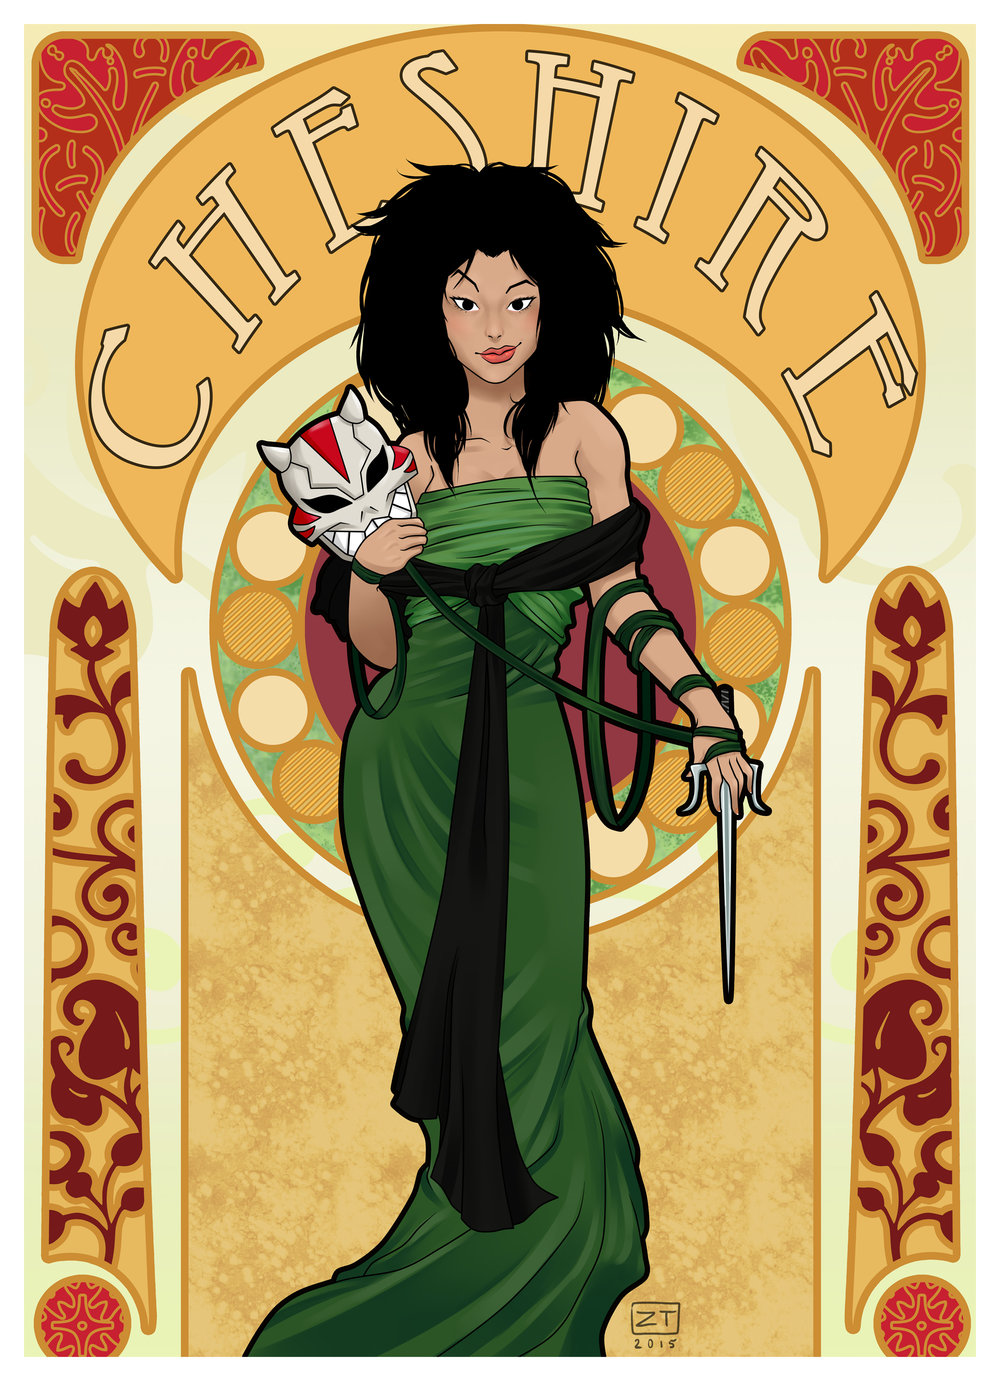 Cheshire  in the style of Mucha (Young Justice; TV series)   Paint Tool Sai/Photoshop, 2015